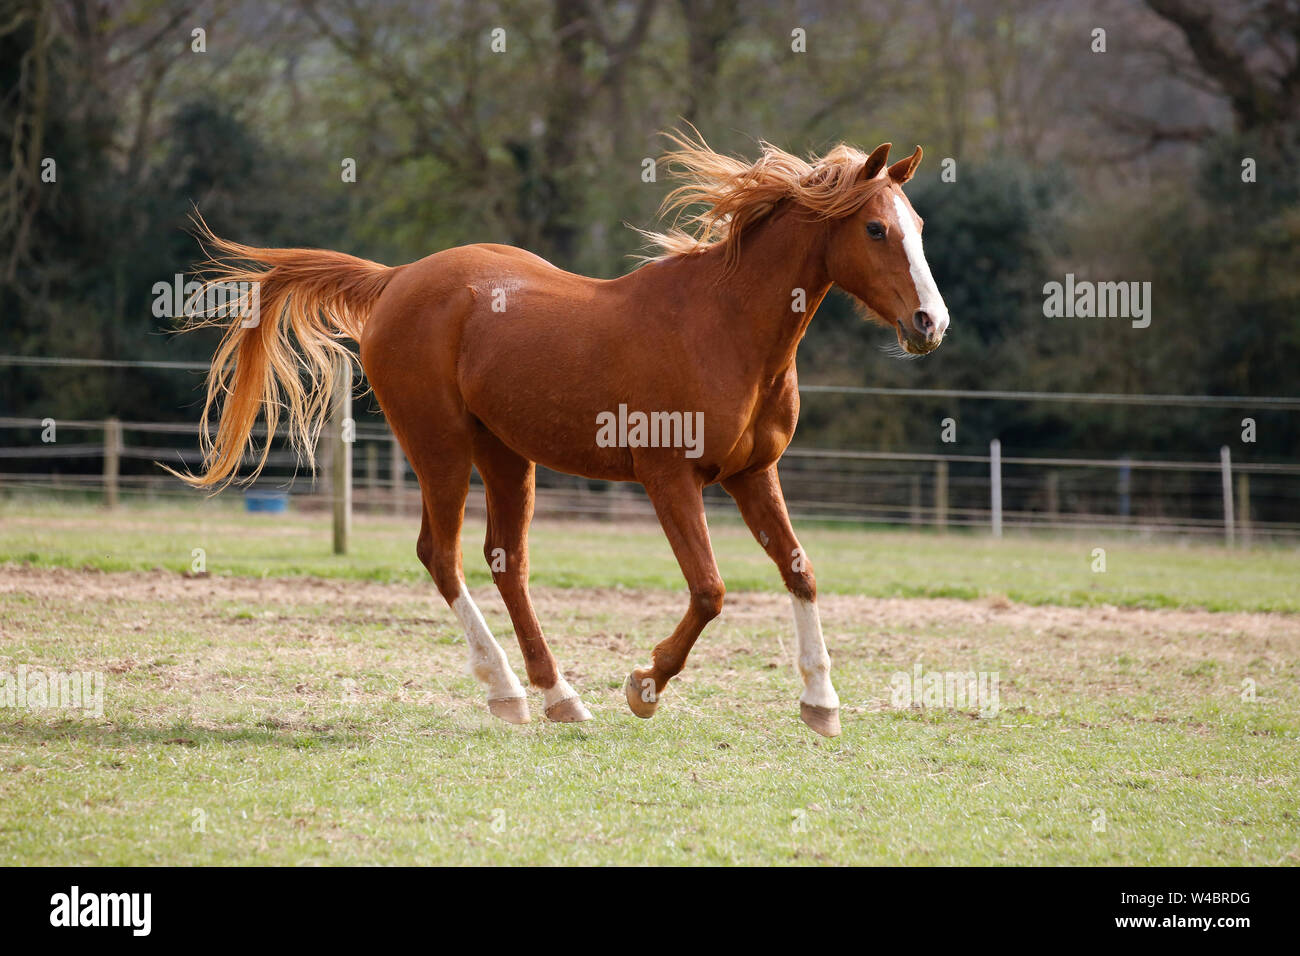 Horse Running In At A Rural Farm The Horses Are Looked After Naturally Allowing Them To Run Free Live In Open Fields And Are Without Horse Shoes Stock Photo Alamy